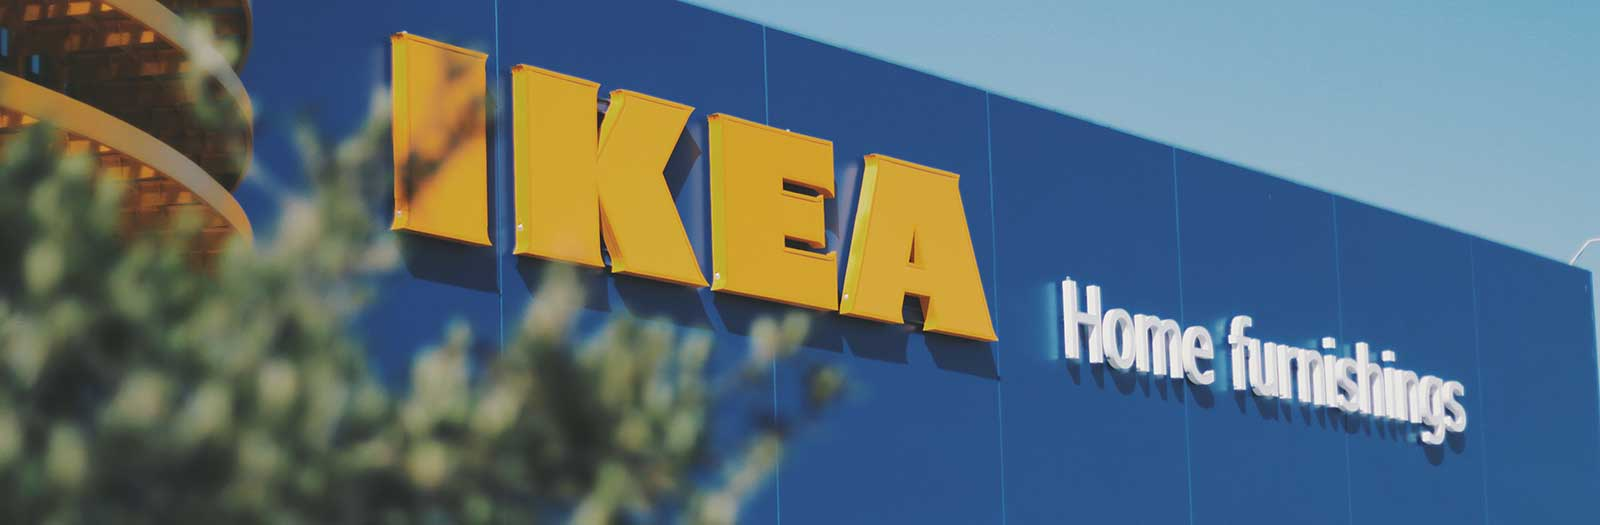 photo of exterior of IKEA store